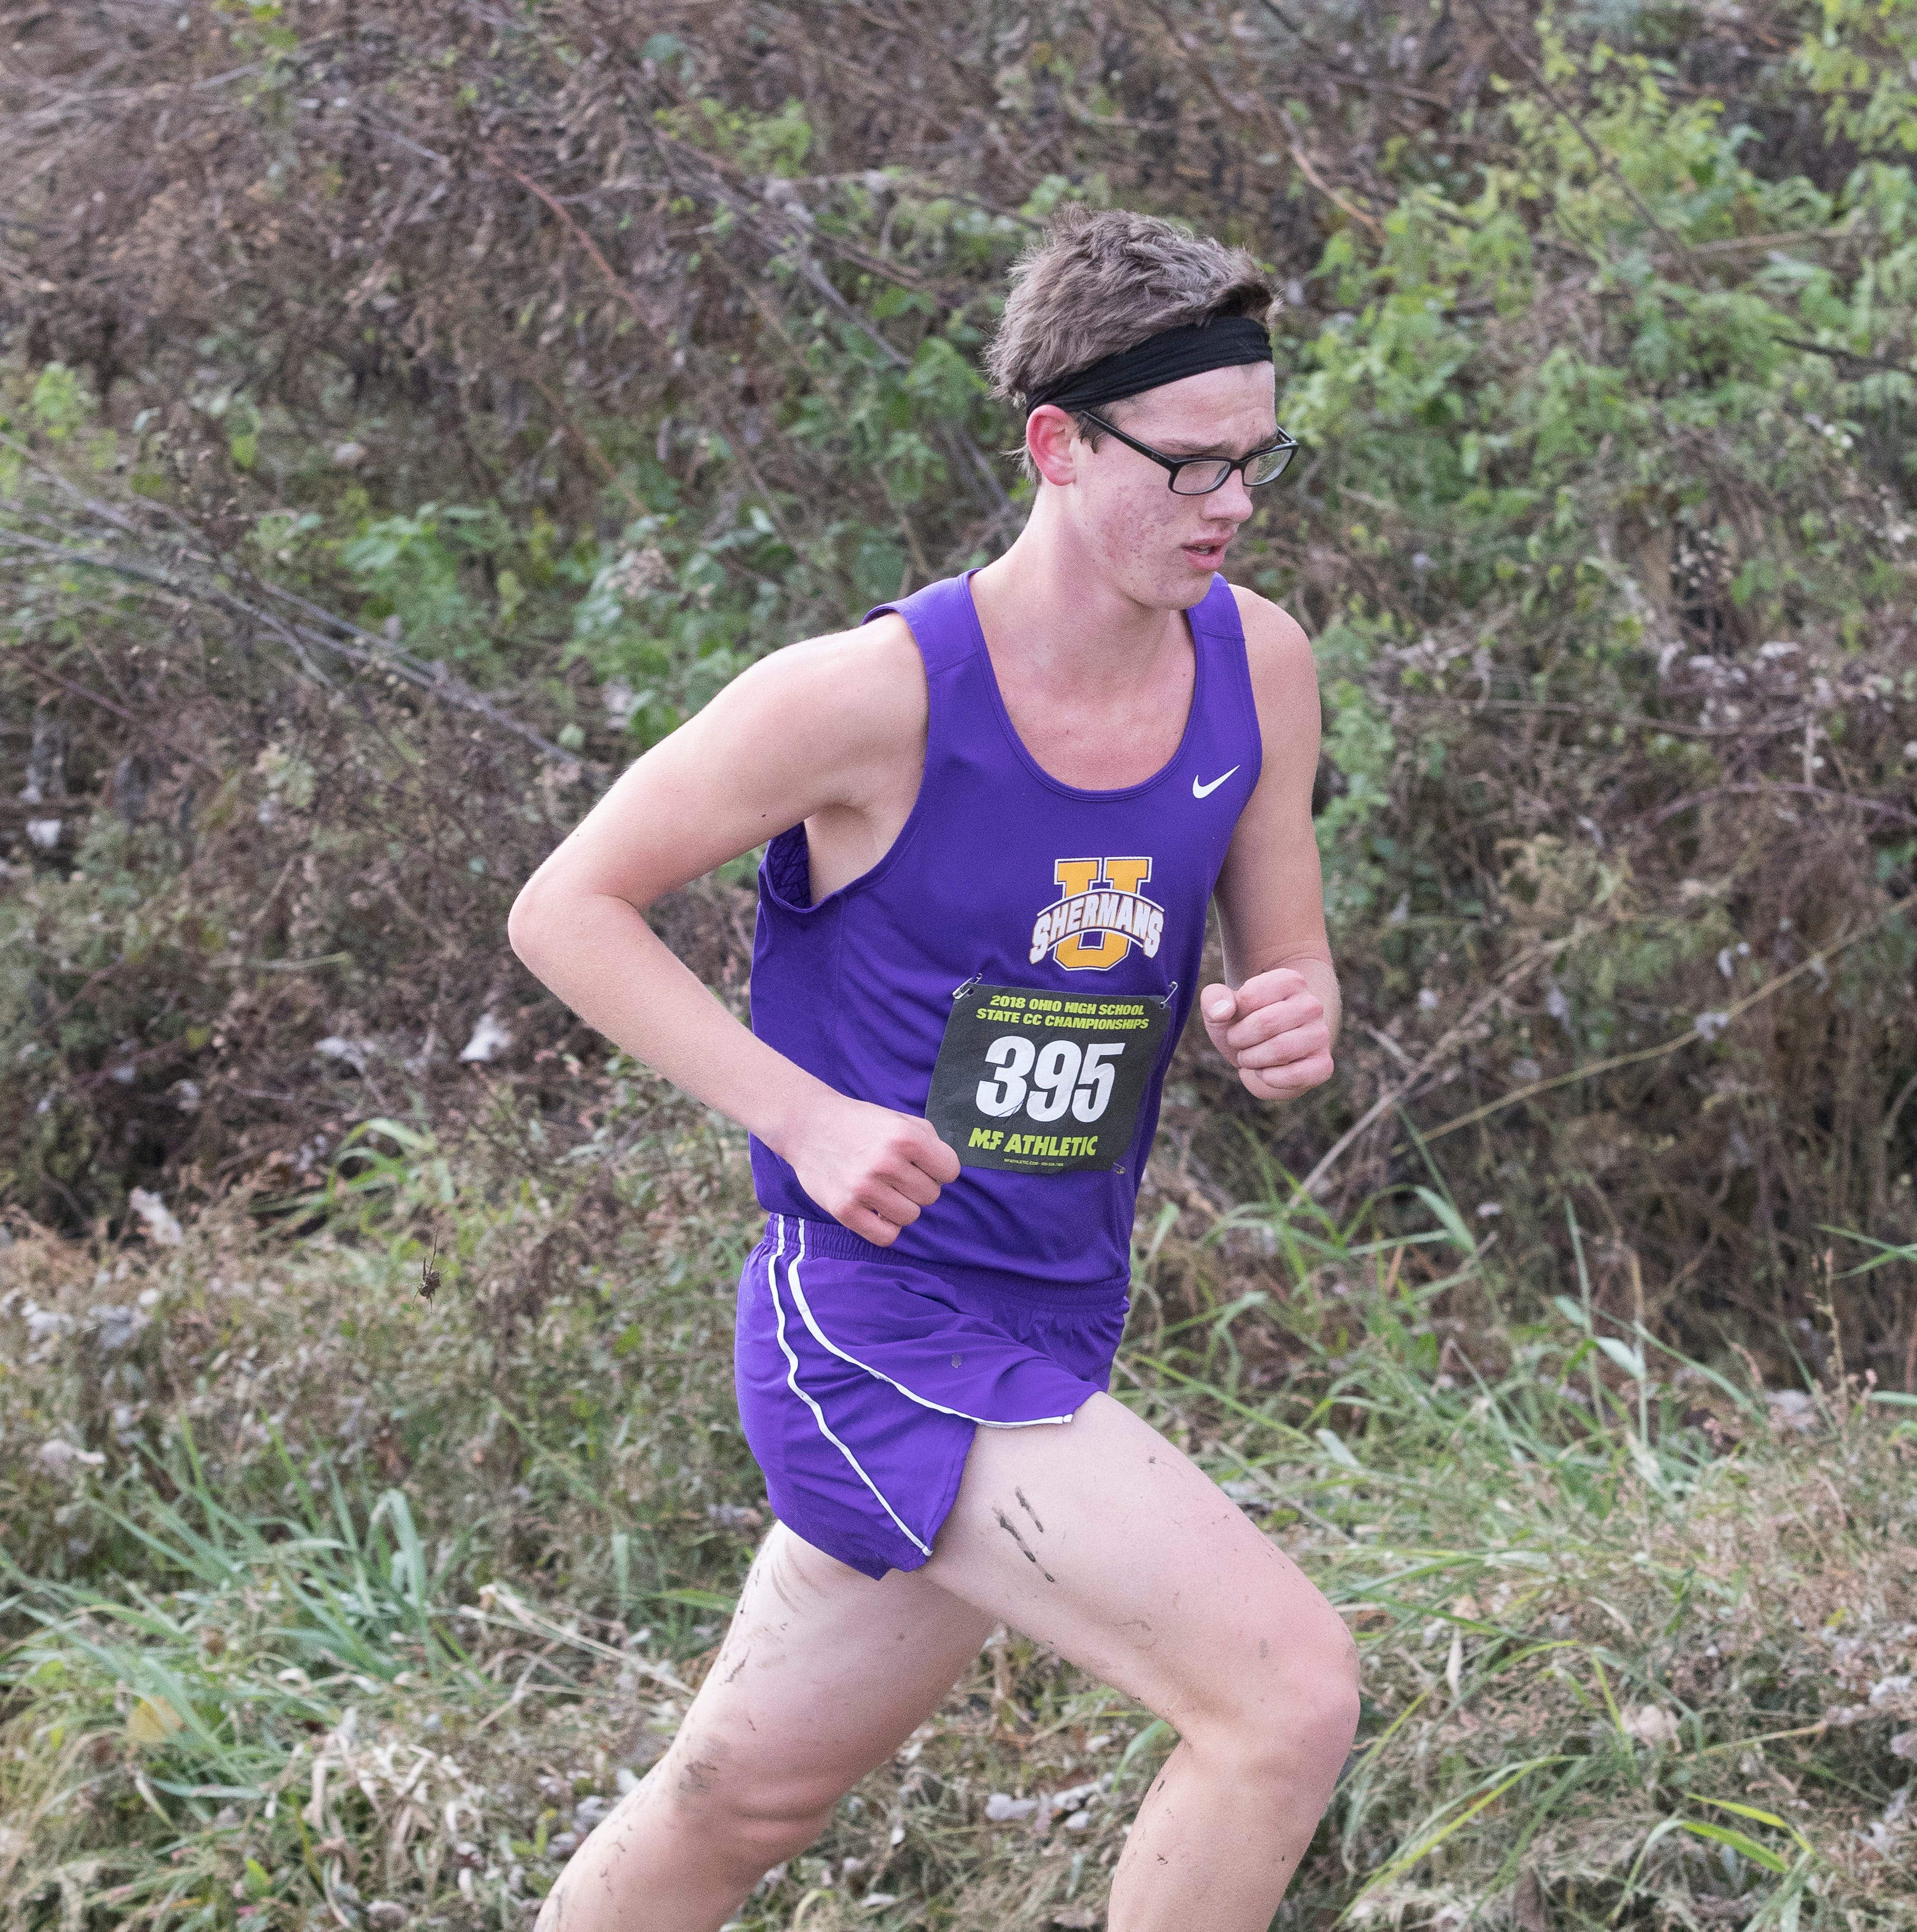 OHIO HS CROSS COUNTRY: Unioto finishes sixth, Markko places in top-20 at state meet